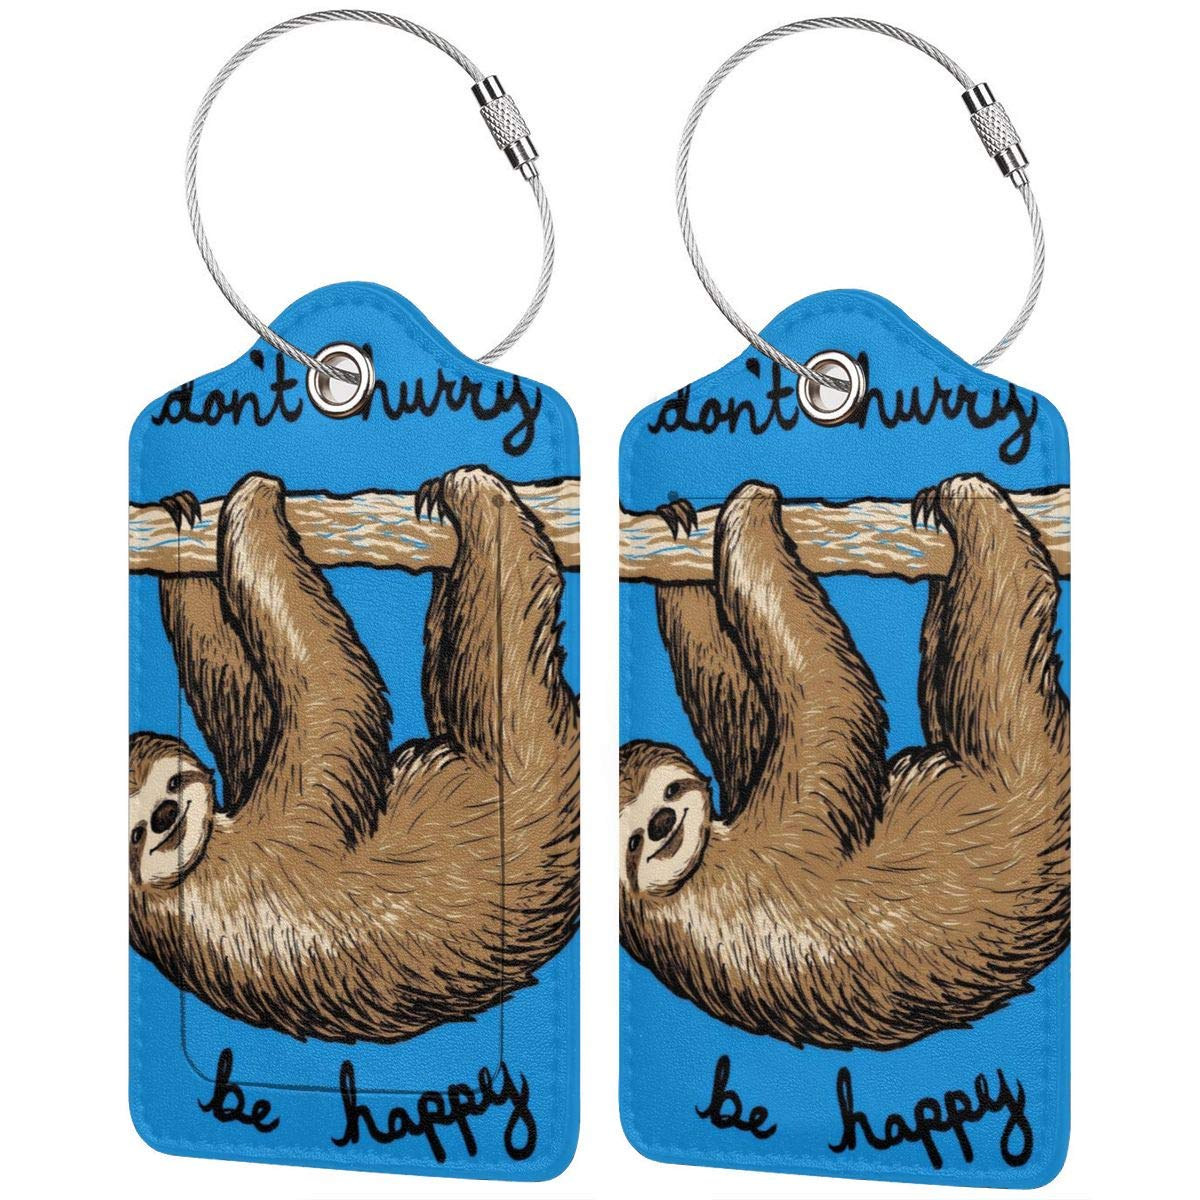 Funny Blue Sloth Luggage Tag Label Travel Bag Label With Privacy Cover Luggage Tag Leather Personalized Suitcase Tag Travel Accessories